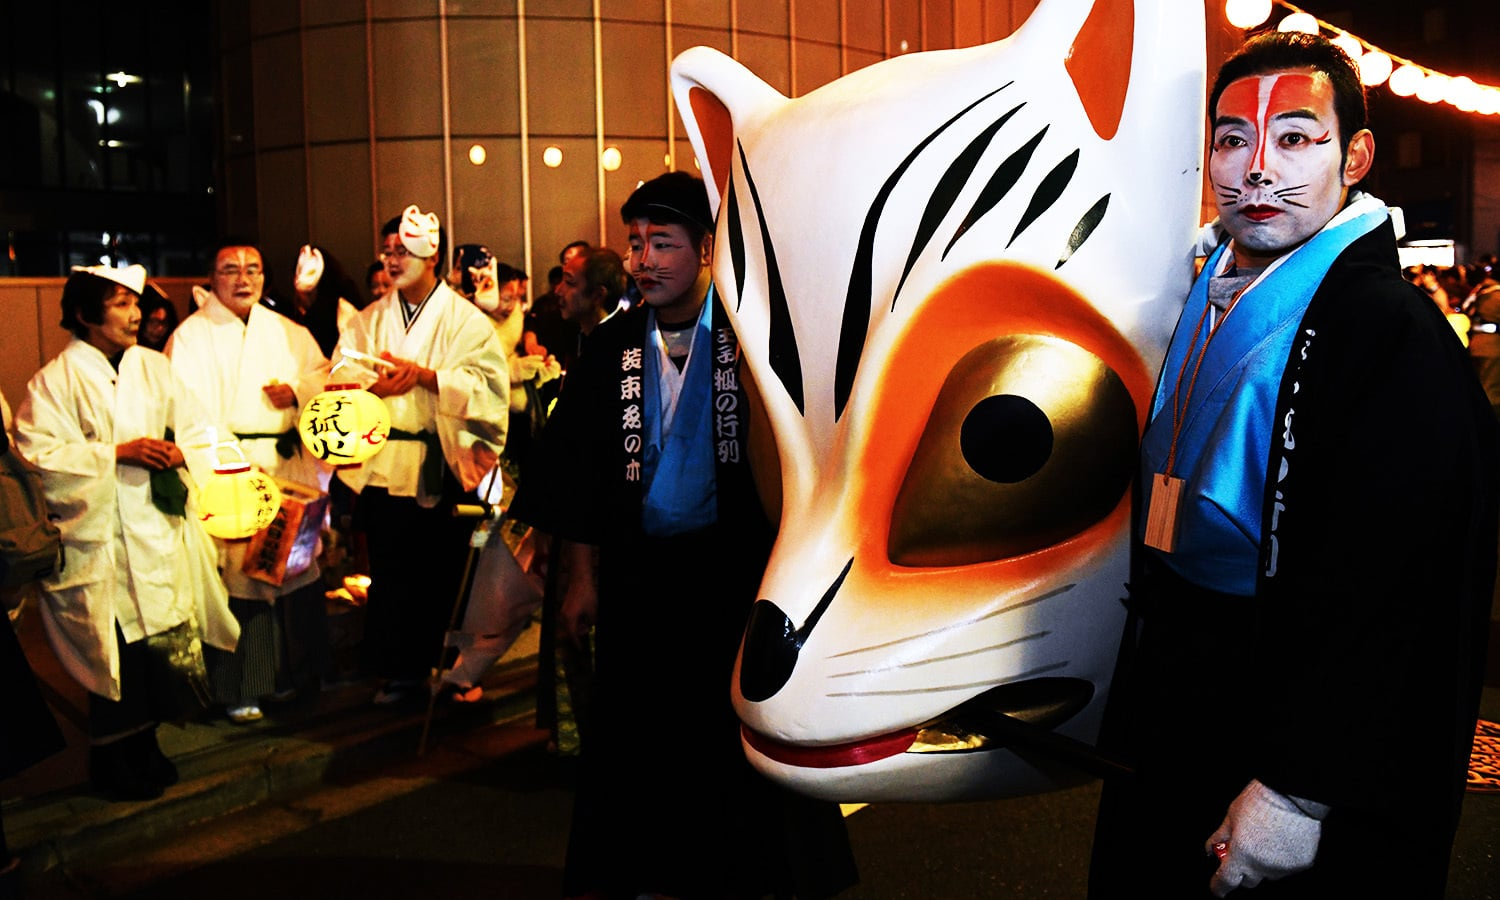 Residents in fox makeup participate in the Oji Fox parade to thank the outgoing and welcome the incoming year in Tokyo, Japan.—AFP